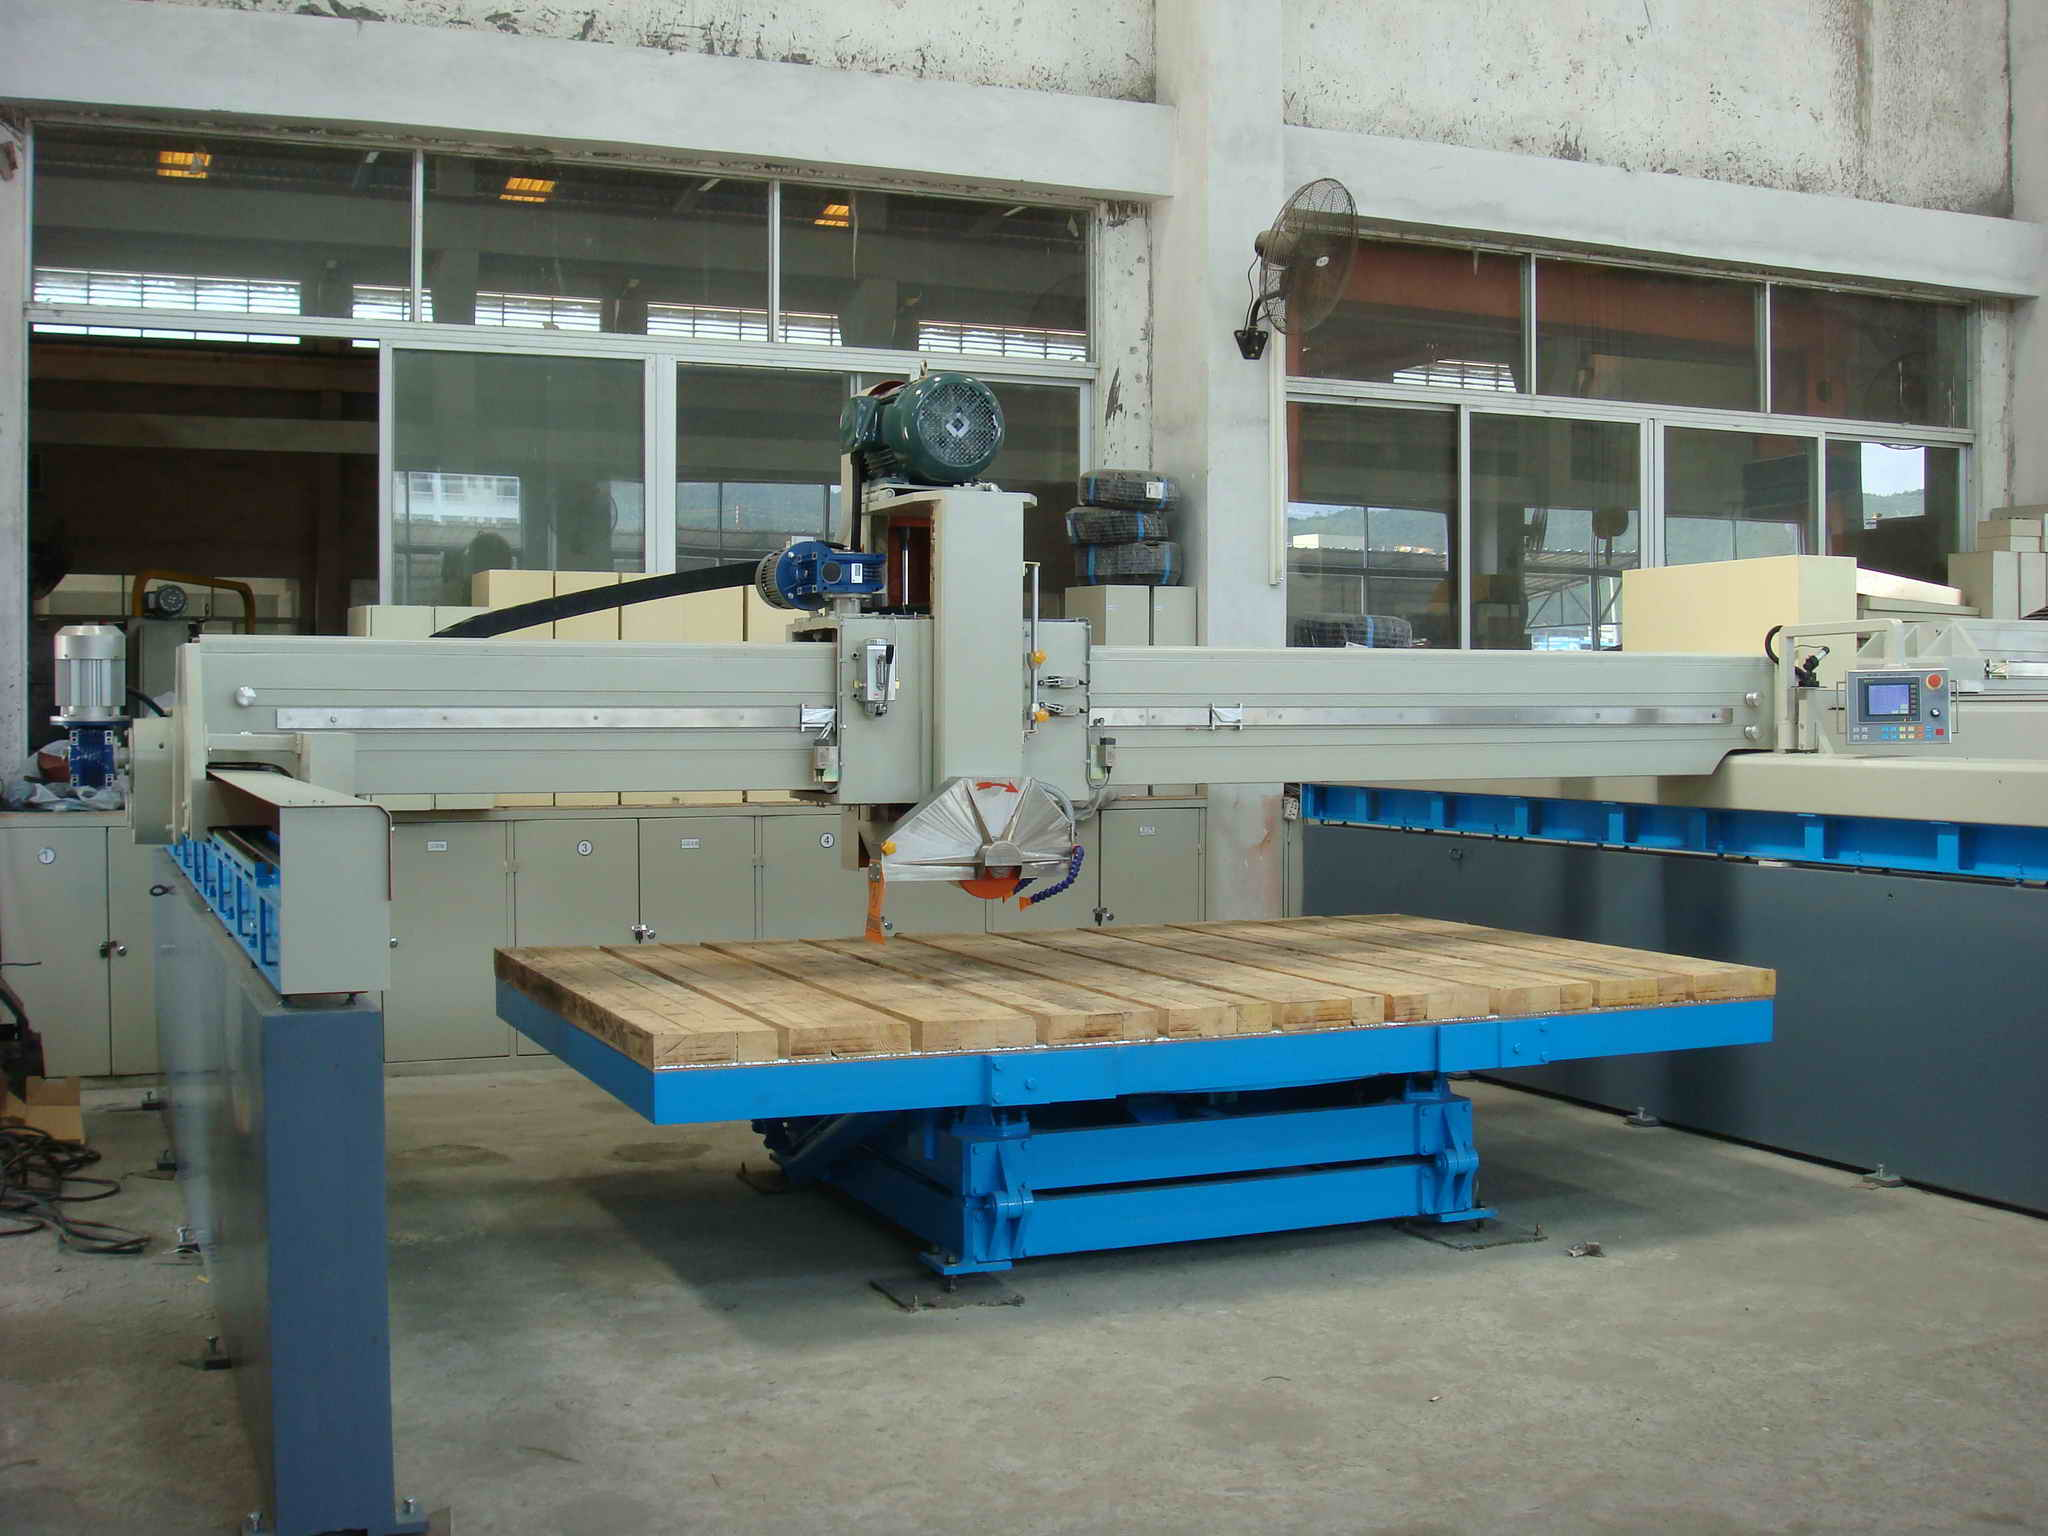 Saw To Cut Granite Countertop Al Mahir Factories Machinery Spare Parts Tr Llc